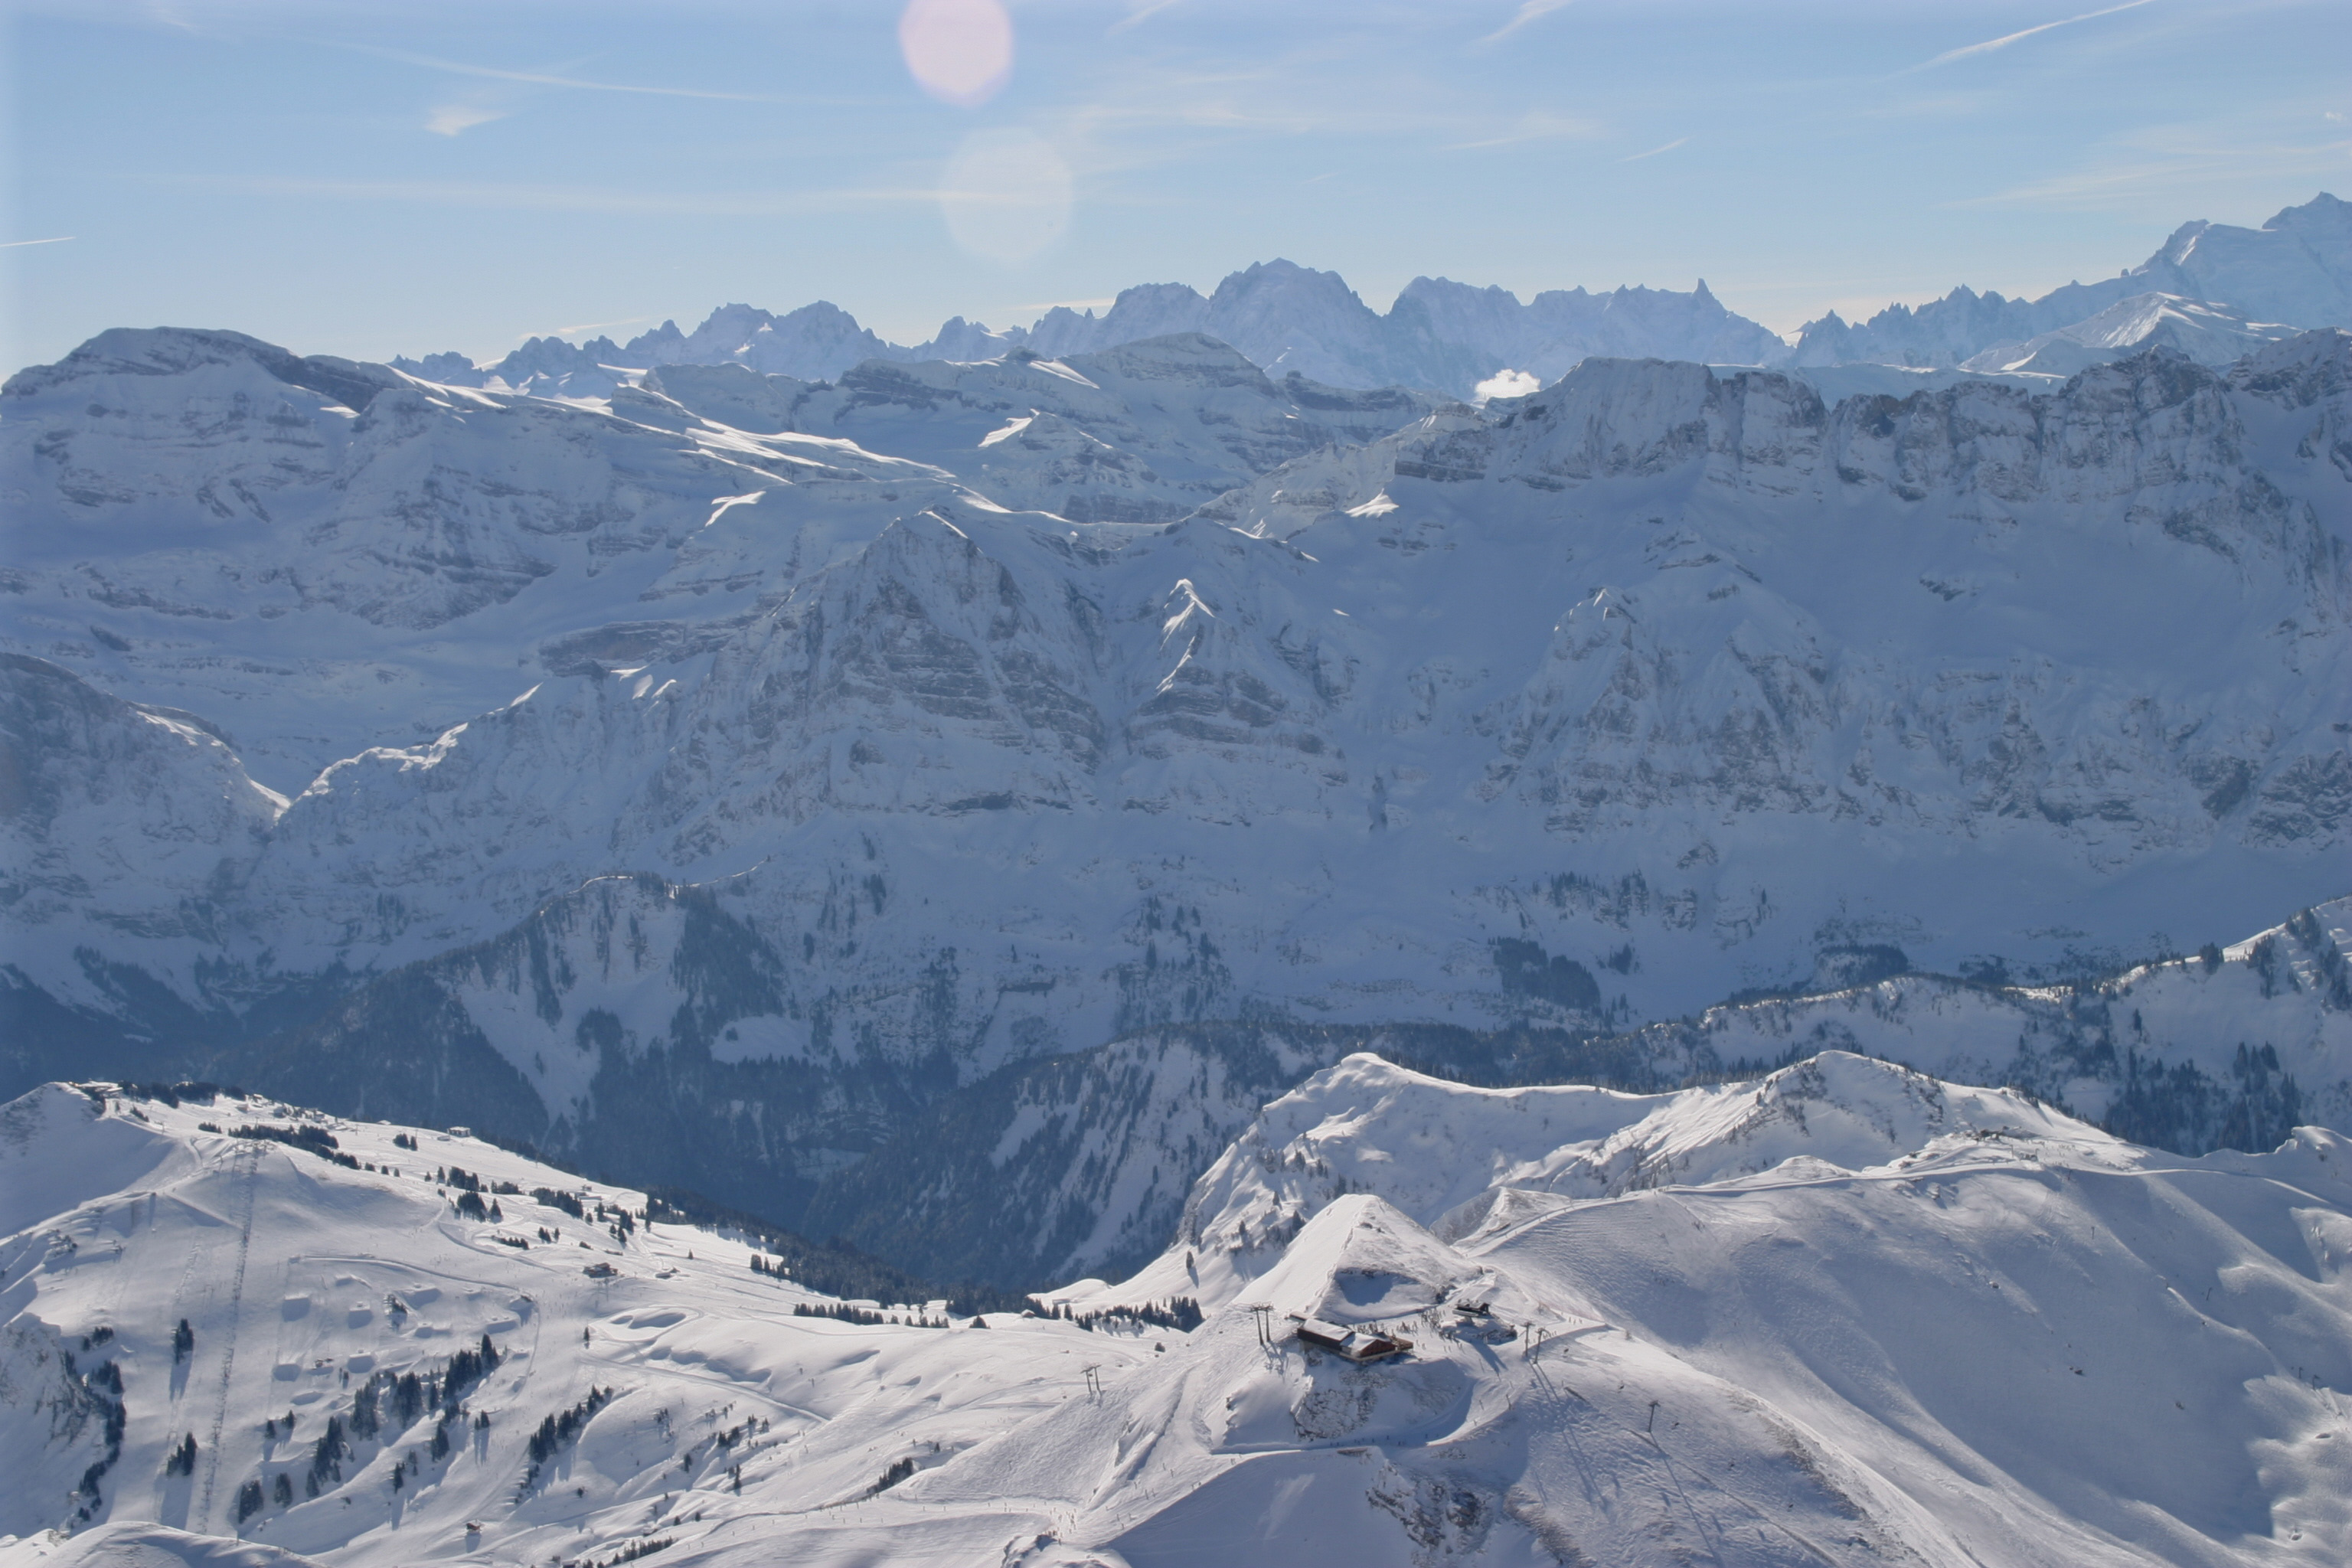 The top of Les Hauts Forts in Avoriaz